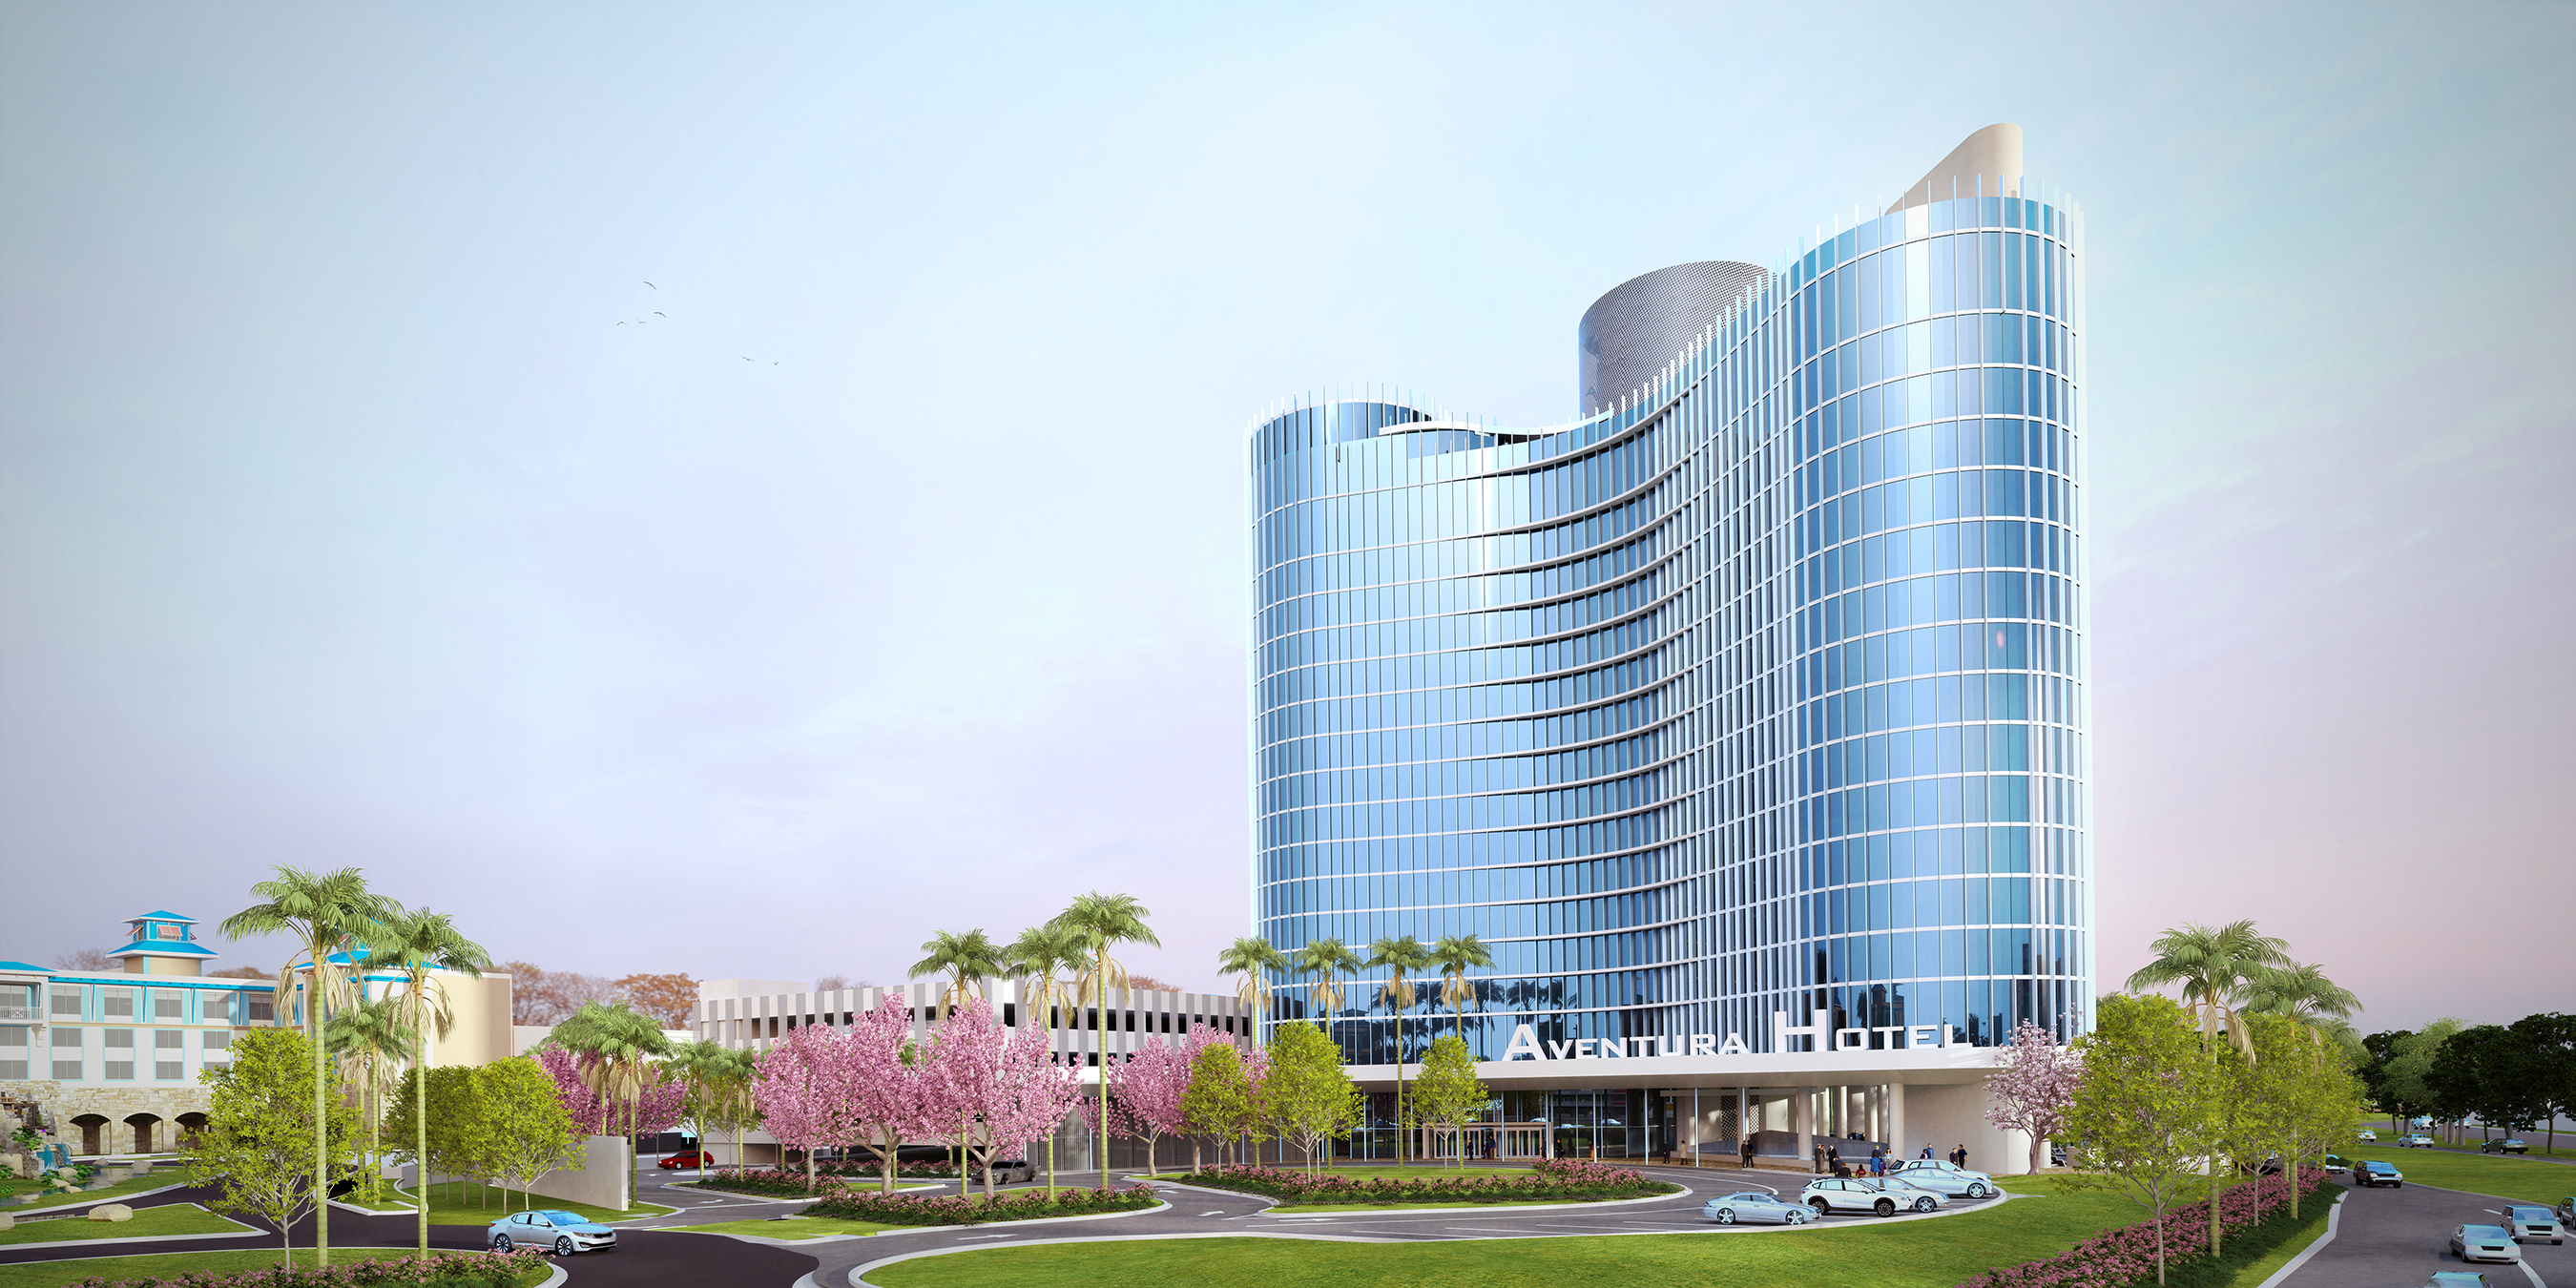 Universal S Aventura Hotel Will Offer A Rooftop Bar And Grill When It Opens In 2018